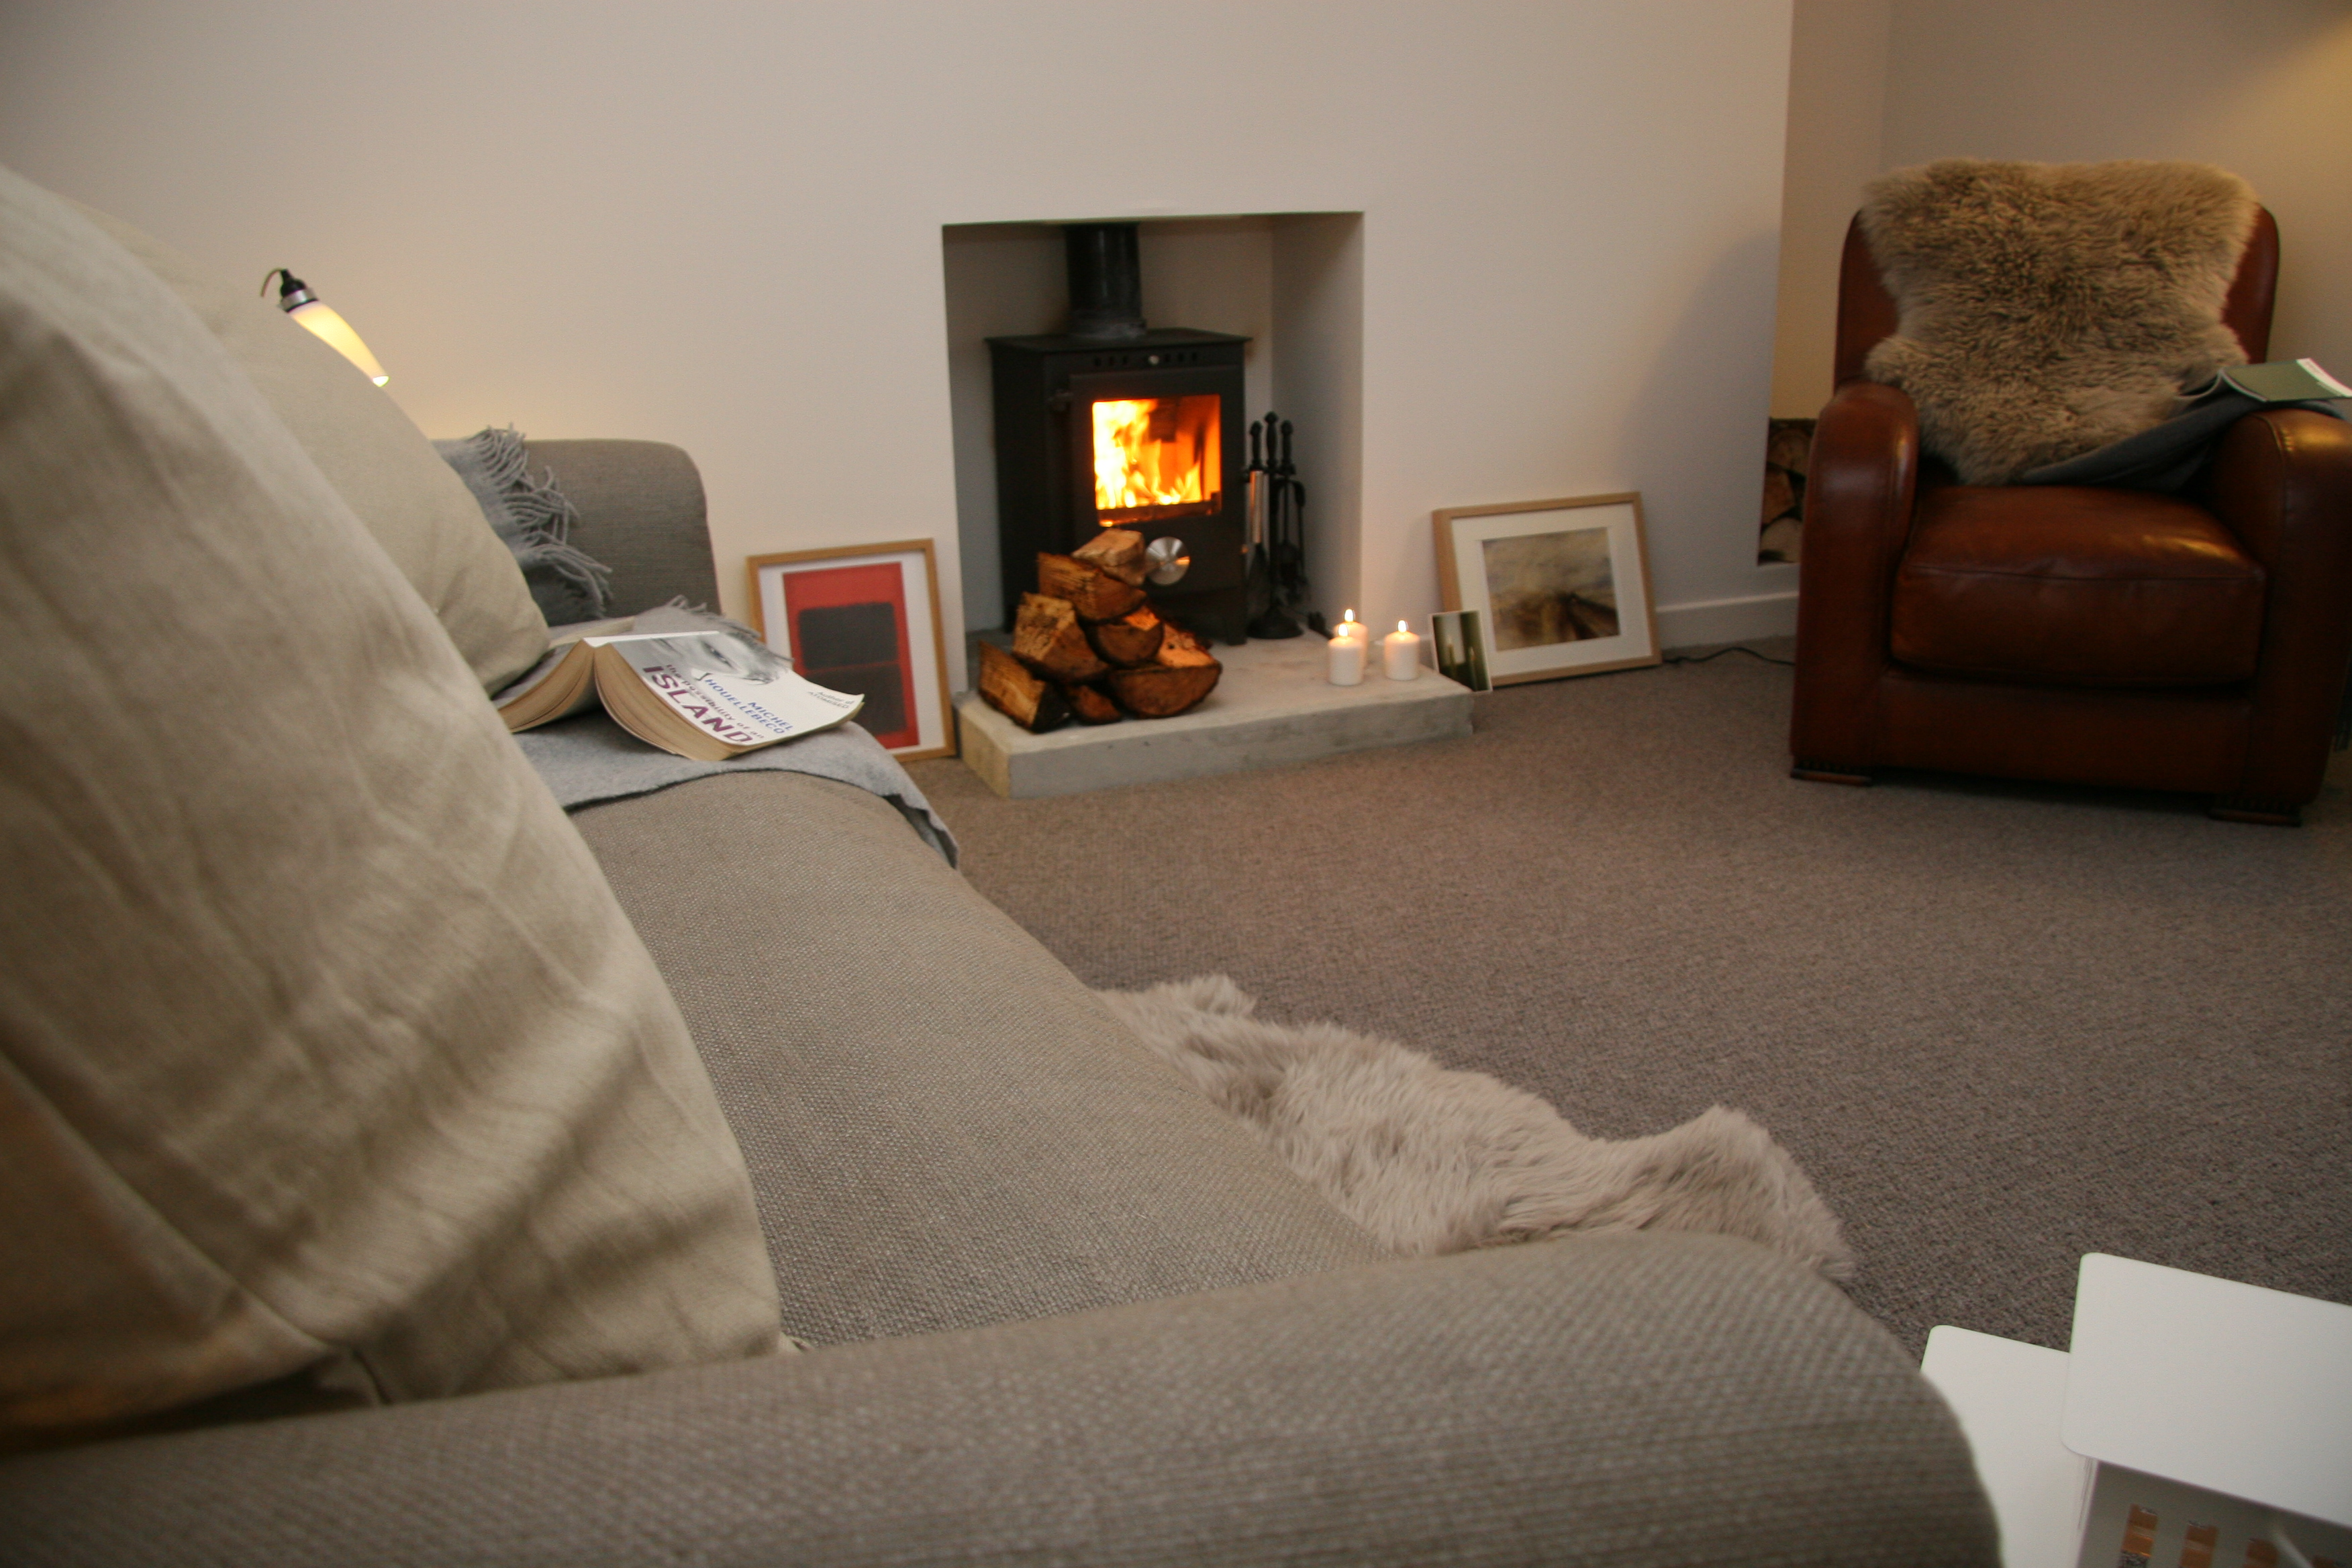 Skye White House Living Room - Beautiful linen sofa and wood burner - Luxury self-catering on the magical Isle of Skye, Scotland, United Kingdom